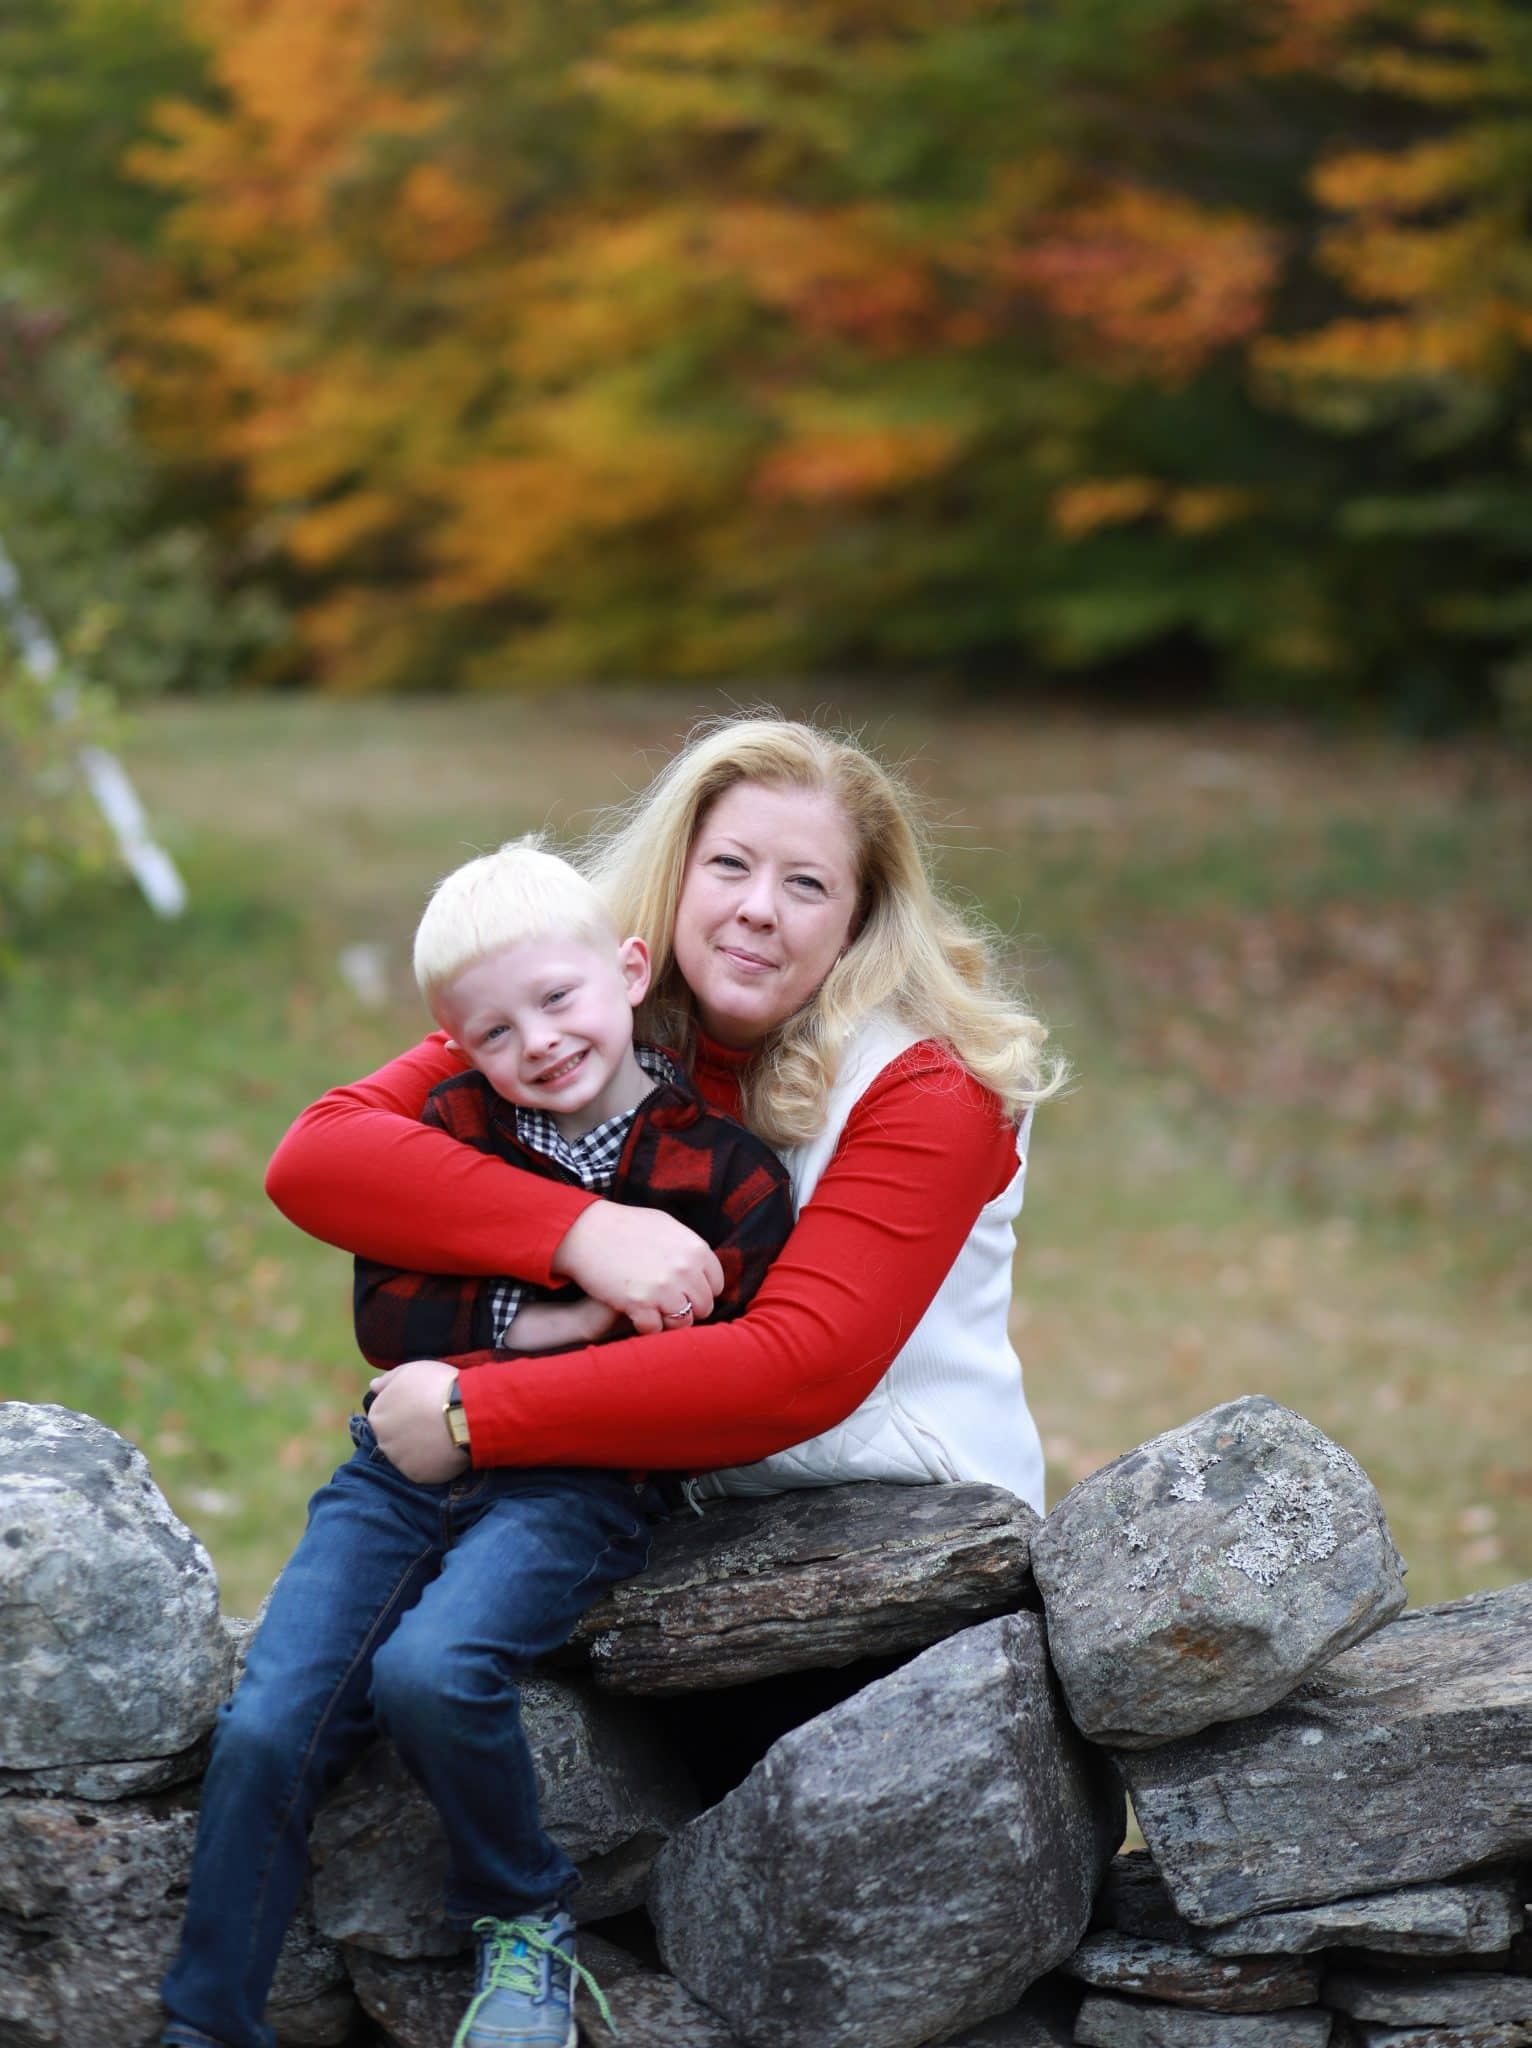 mom hugging son from behind, on stone wall, in apple orchard, fall trees in the background